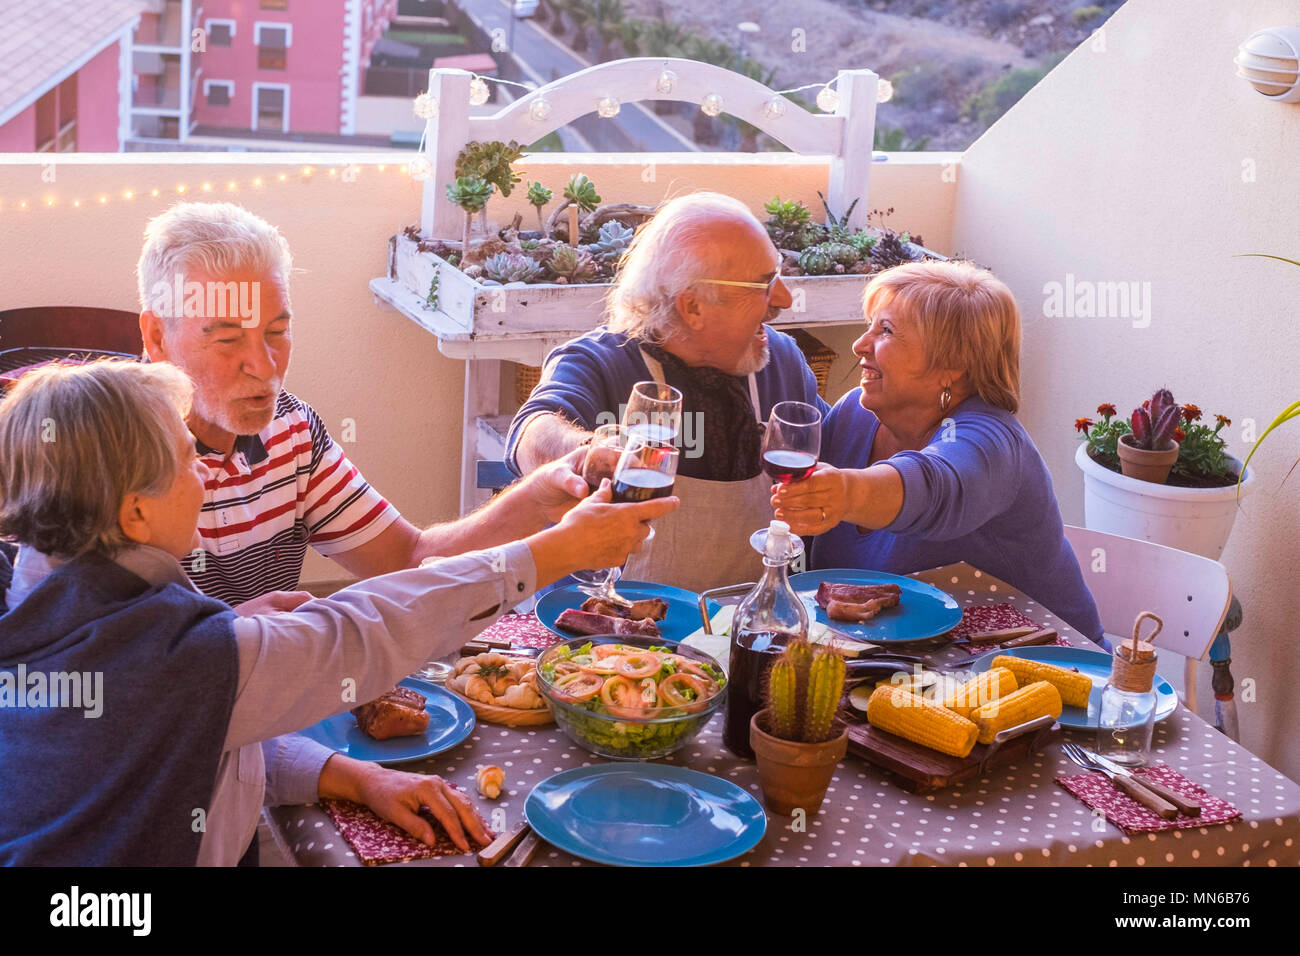 Celebration time at dinner on the rooftop for group of cacuasian senior adult during event. party time with wine and food pon the table. together leis - Stock Image